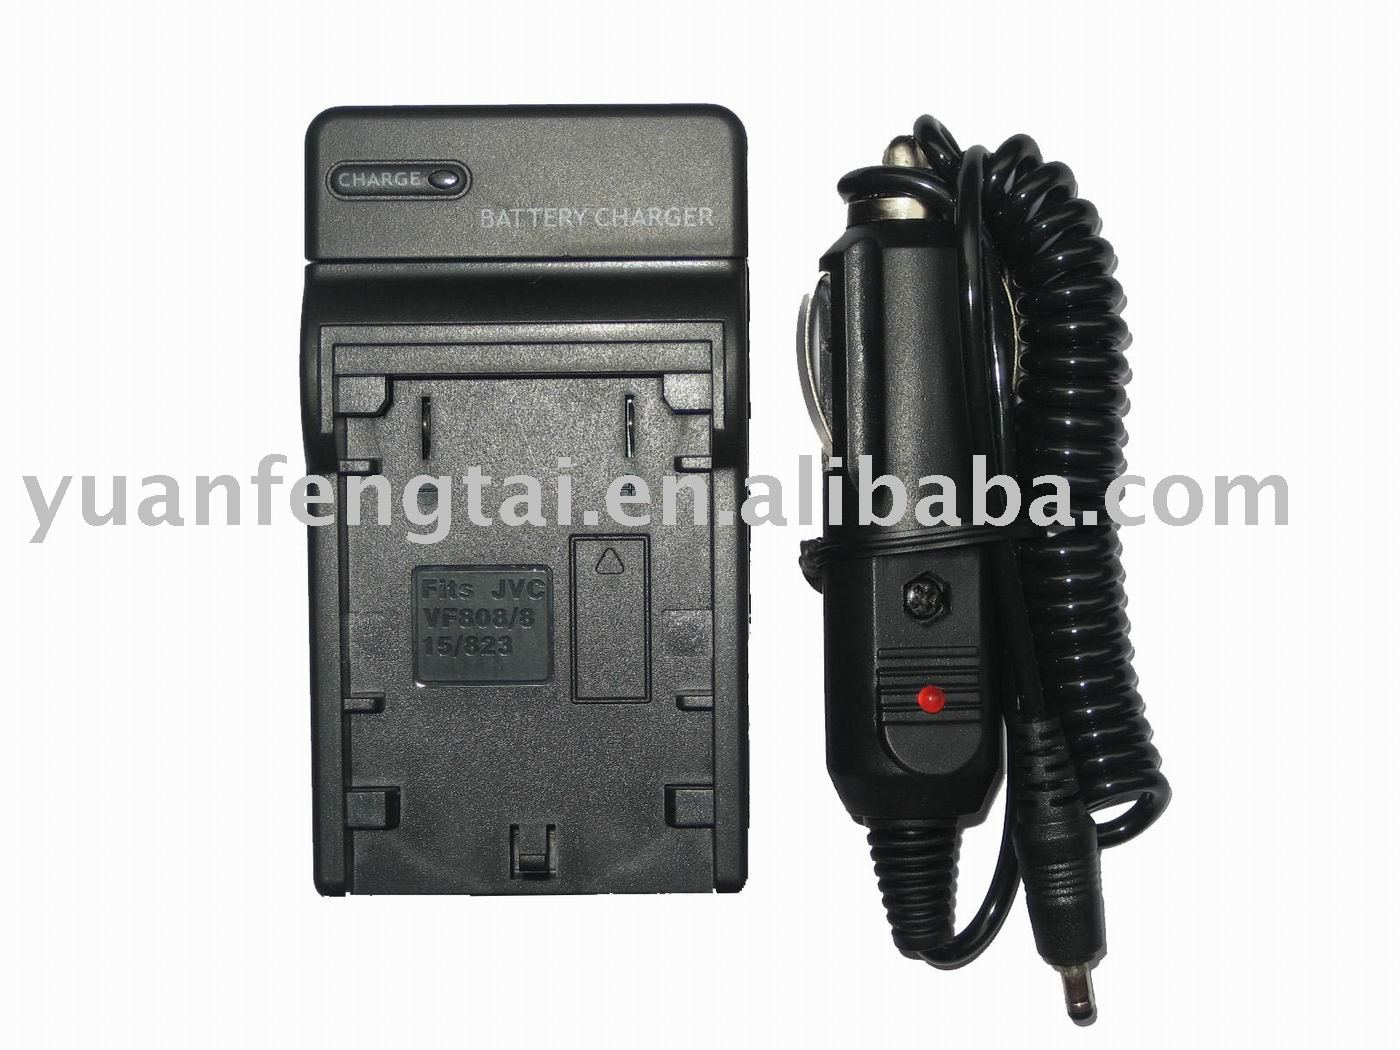 BN-VF808 Battery Charger Camcorder Battery Charger for JVC BN-VF808